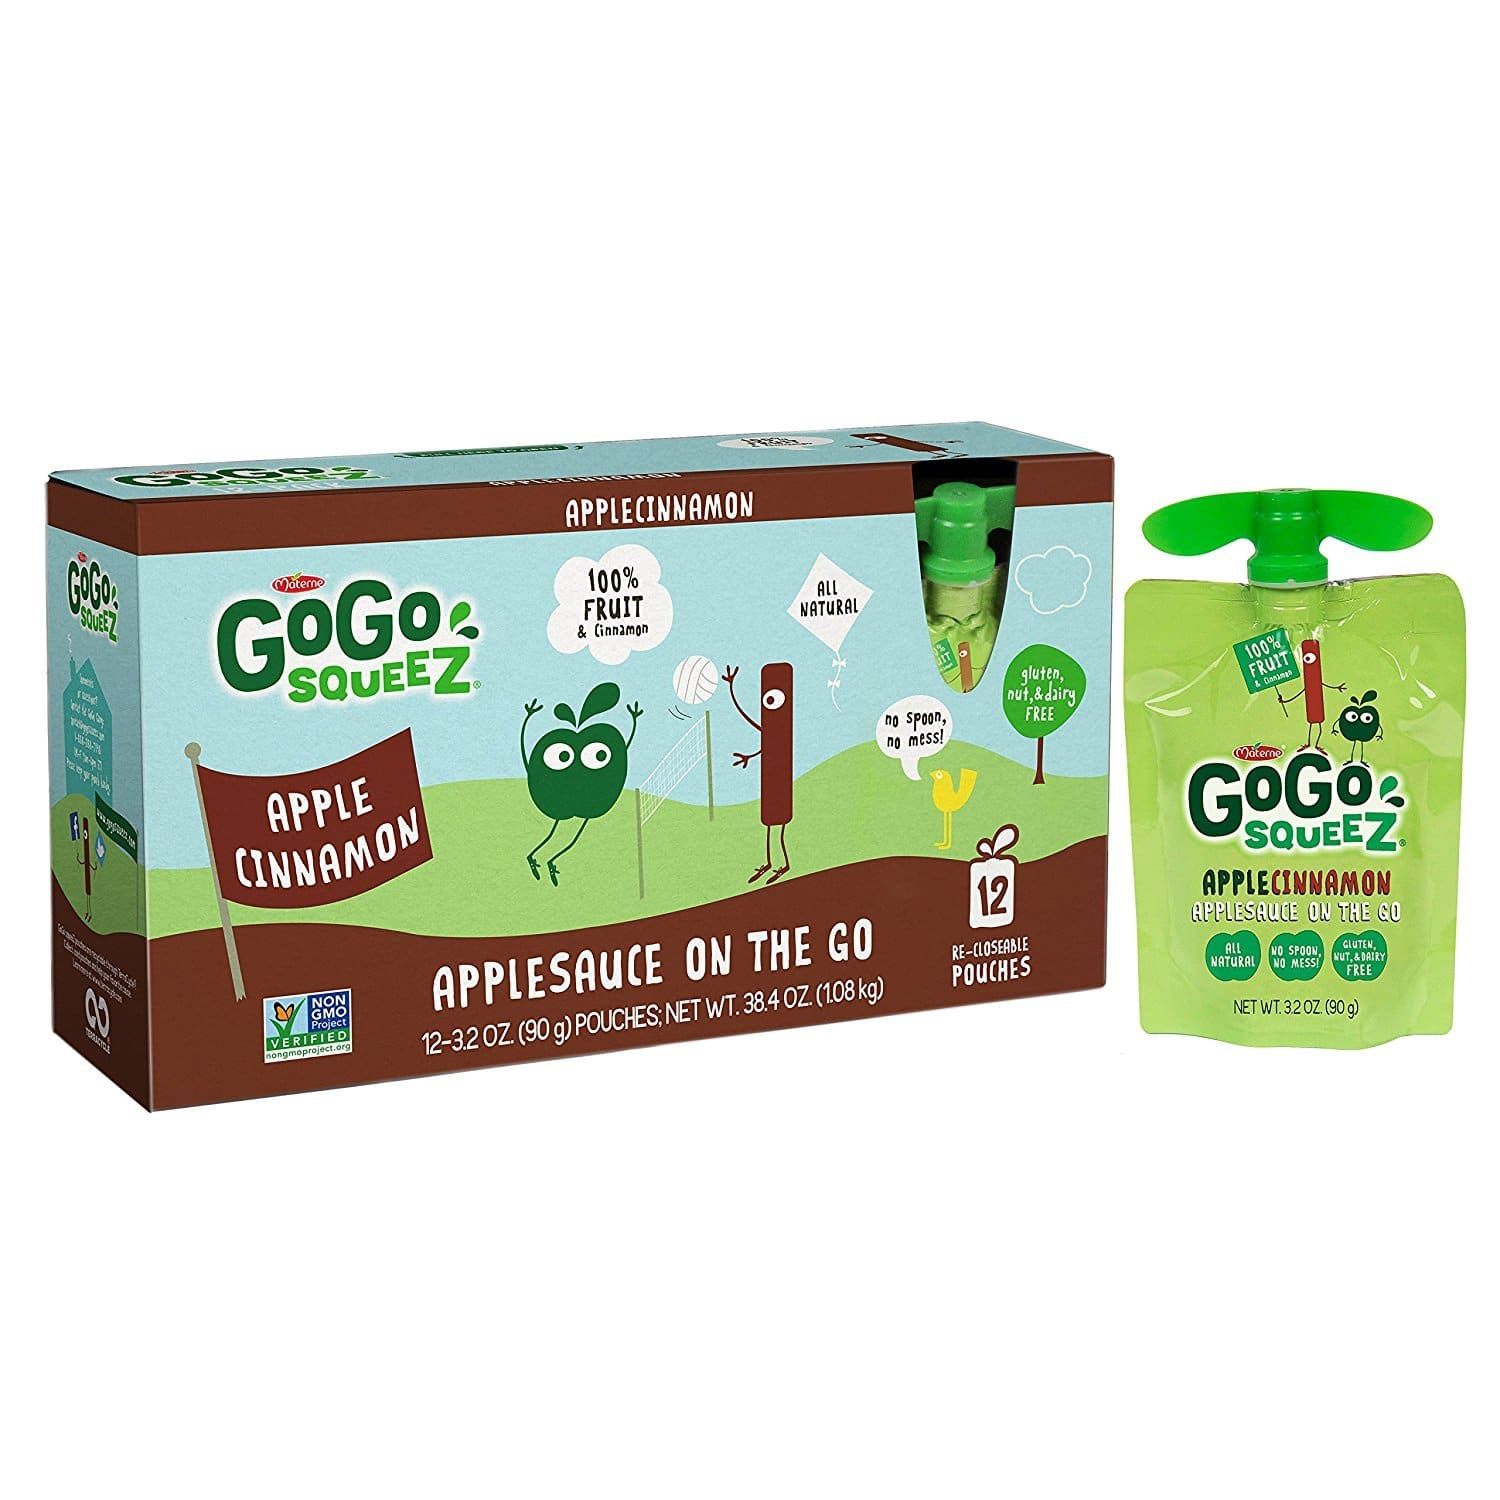 Add-on: GoGo squeeZ Applesauce on the Go (Apple Cinnamon), 48 Pouches (3.2oz each) - $7.90 shipped AC from Amazon (Prime members)